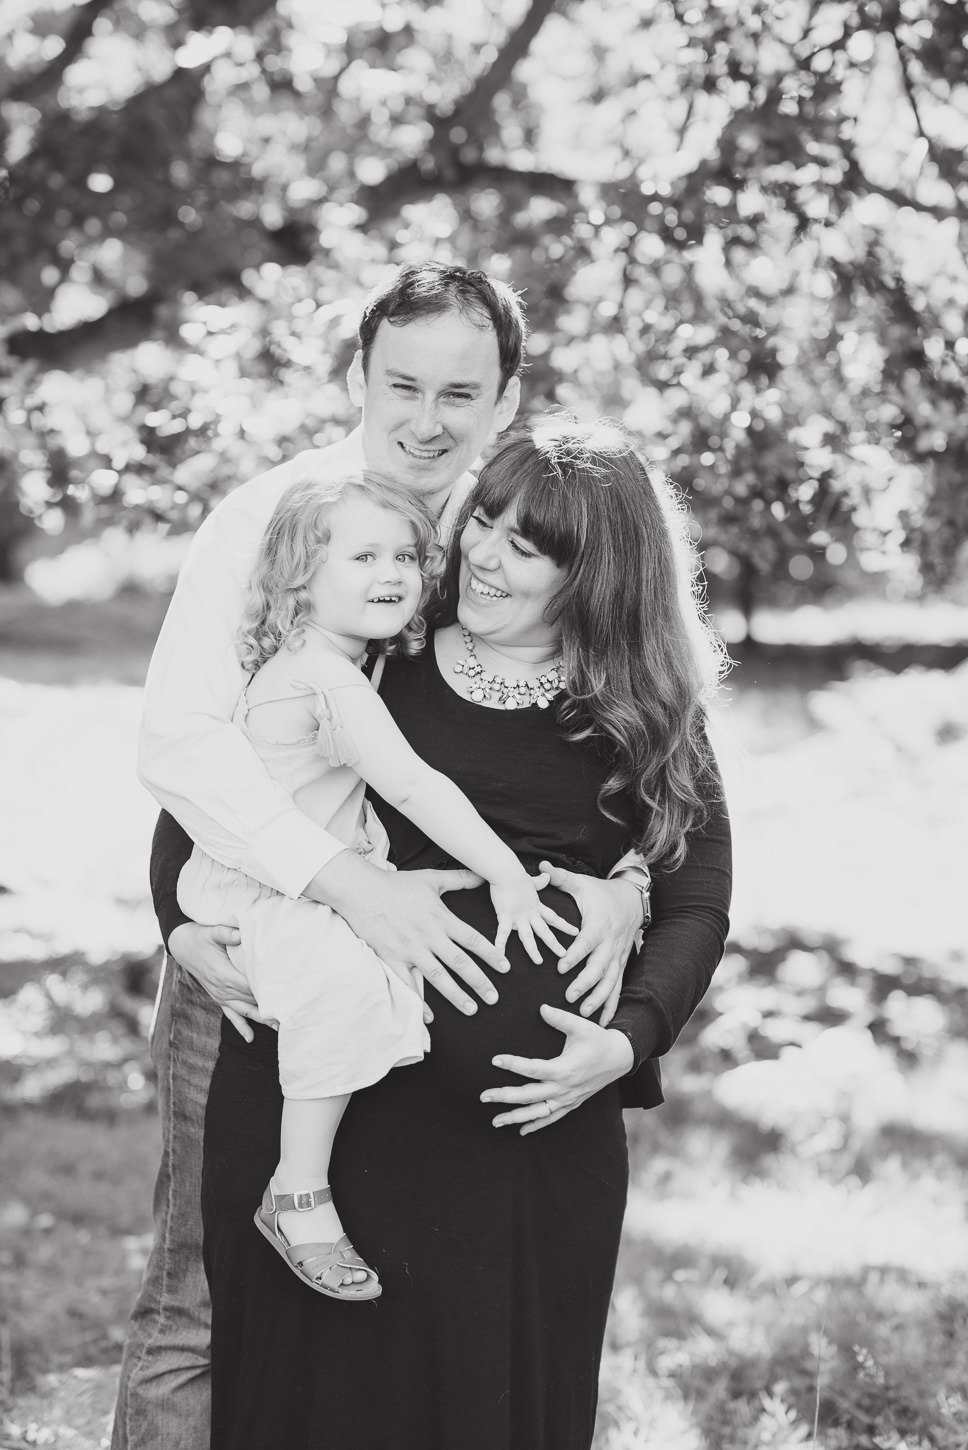 Maternity-family photography tunbridge wells and sevenoaks -Susan Arnold Photography-12